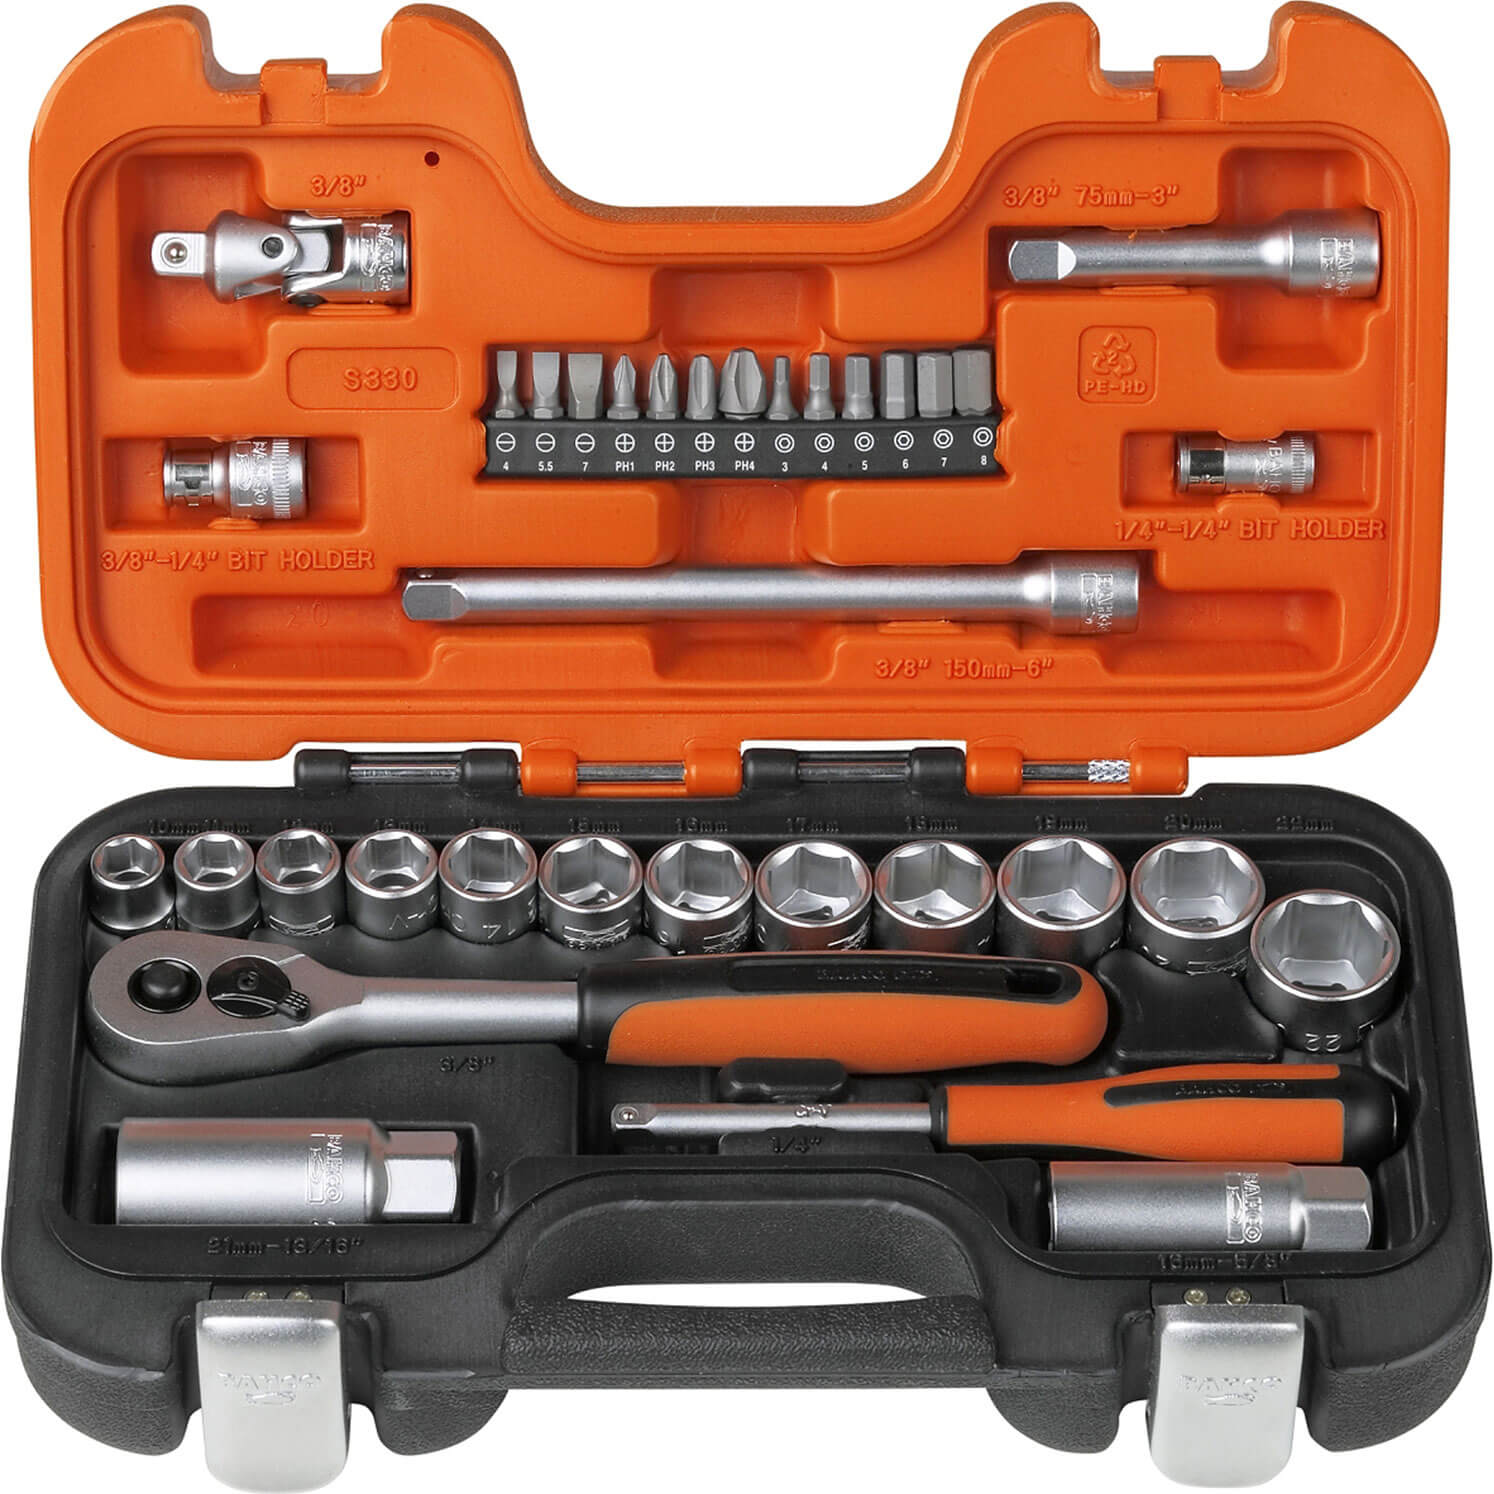 Bahco S330 34 Piece 1/4In & 3/8In Drive Socket Set Combination